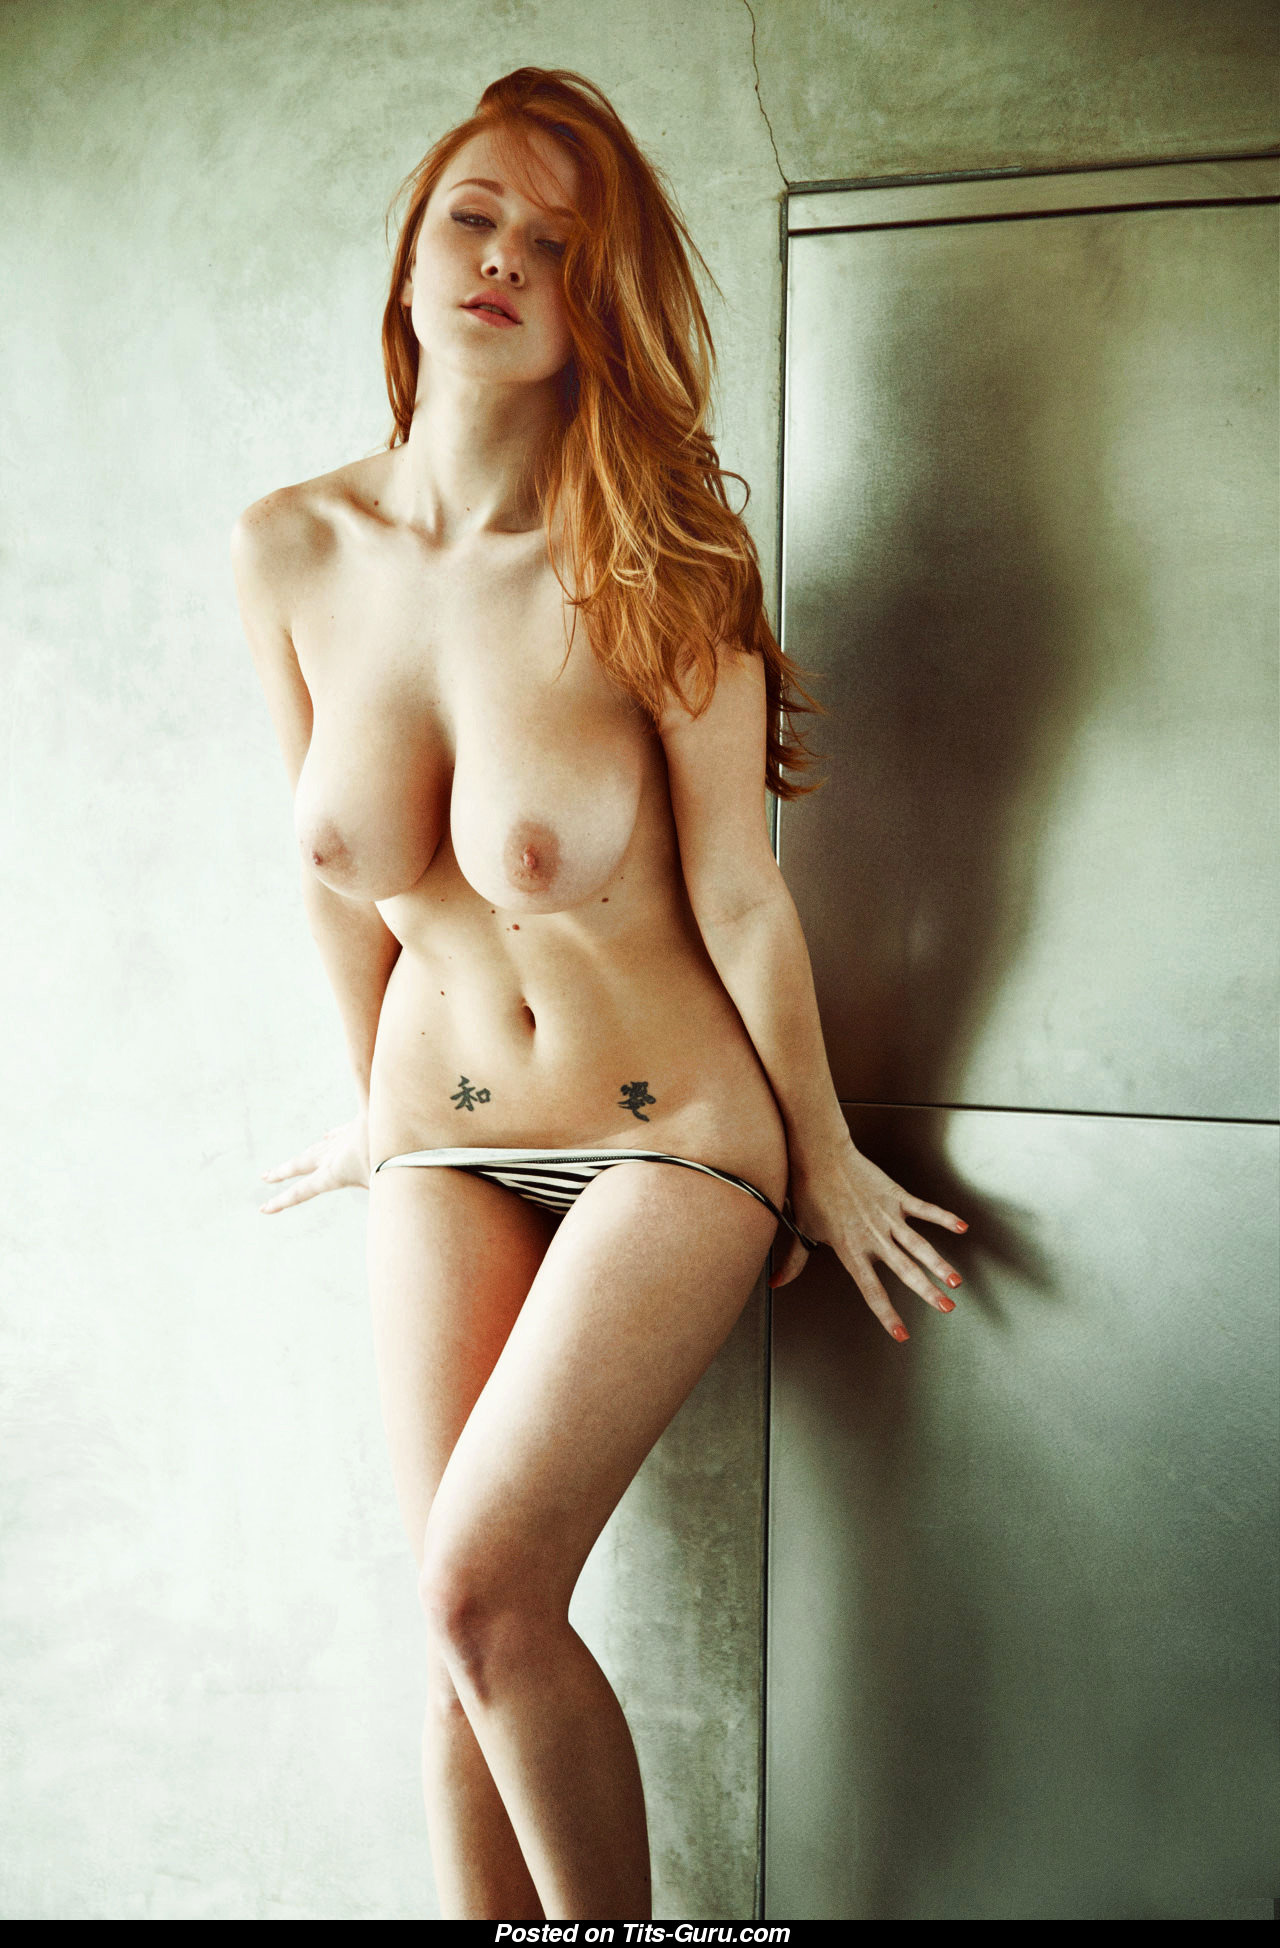 leanna decker - topless red hair with big natural tittes image